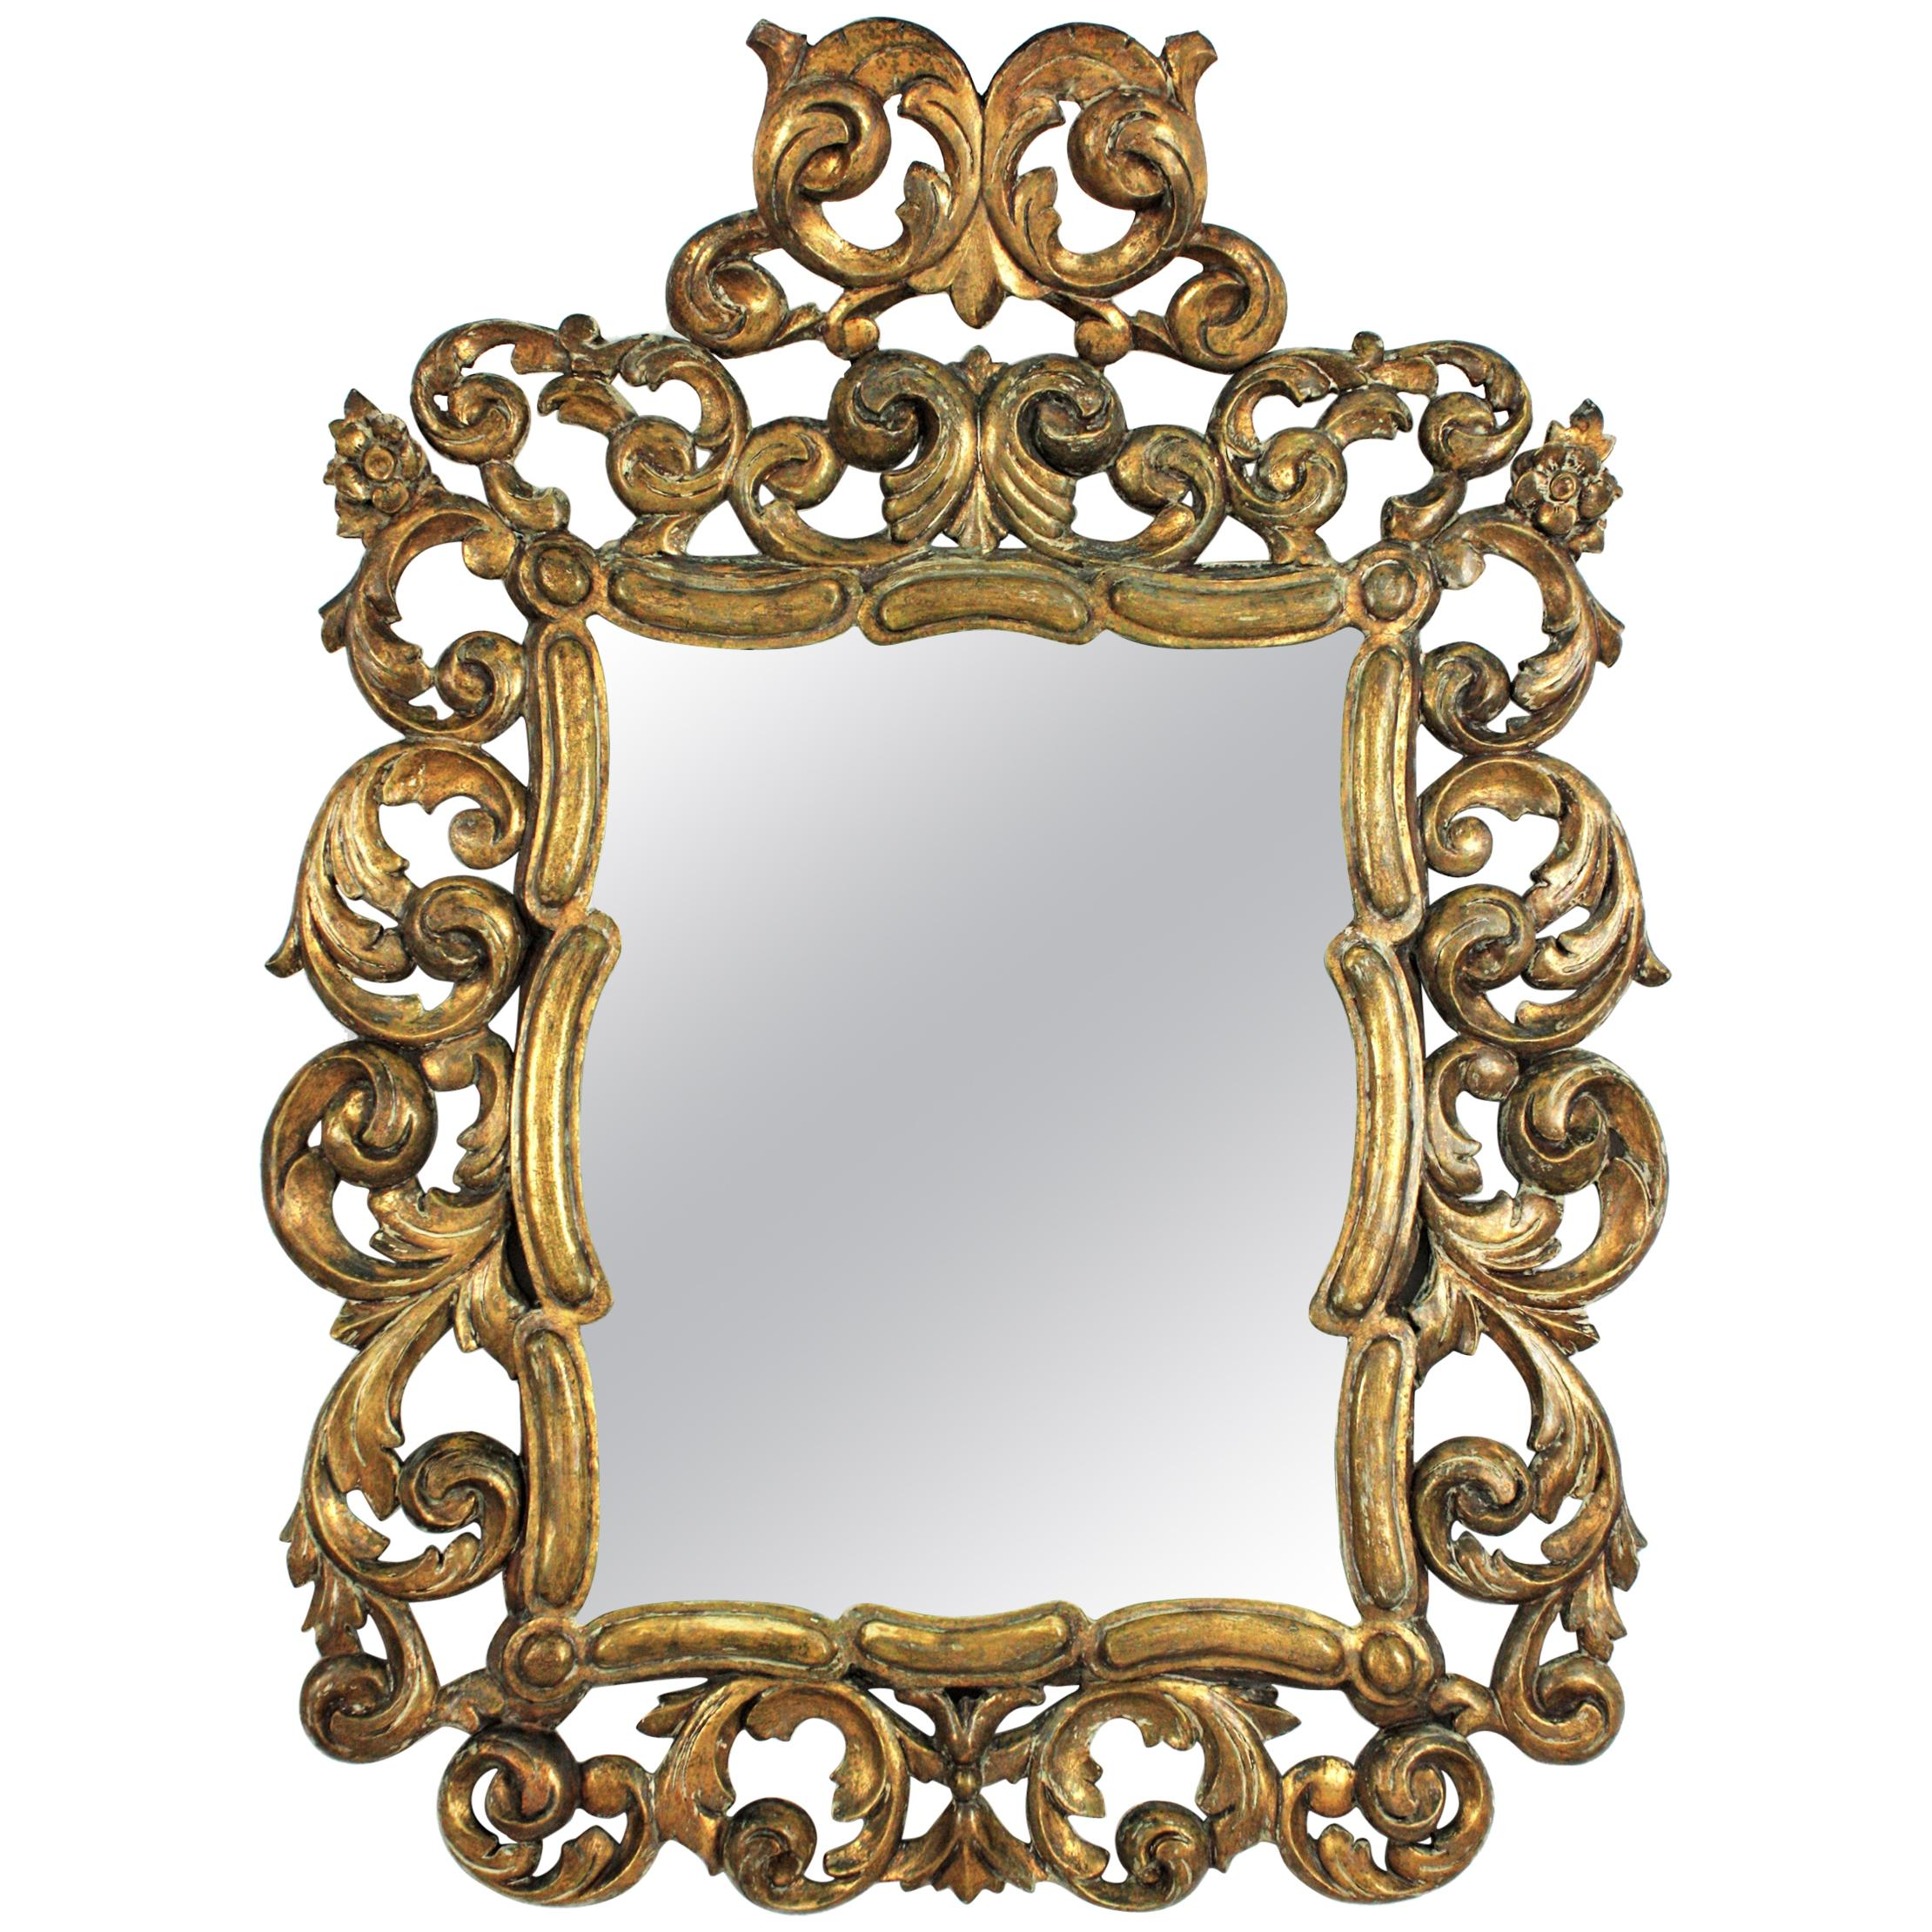 Spanish Rococo Giltwood Mirror with Scrollwork Frame and Crest